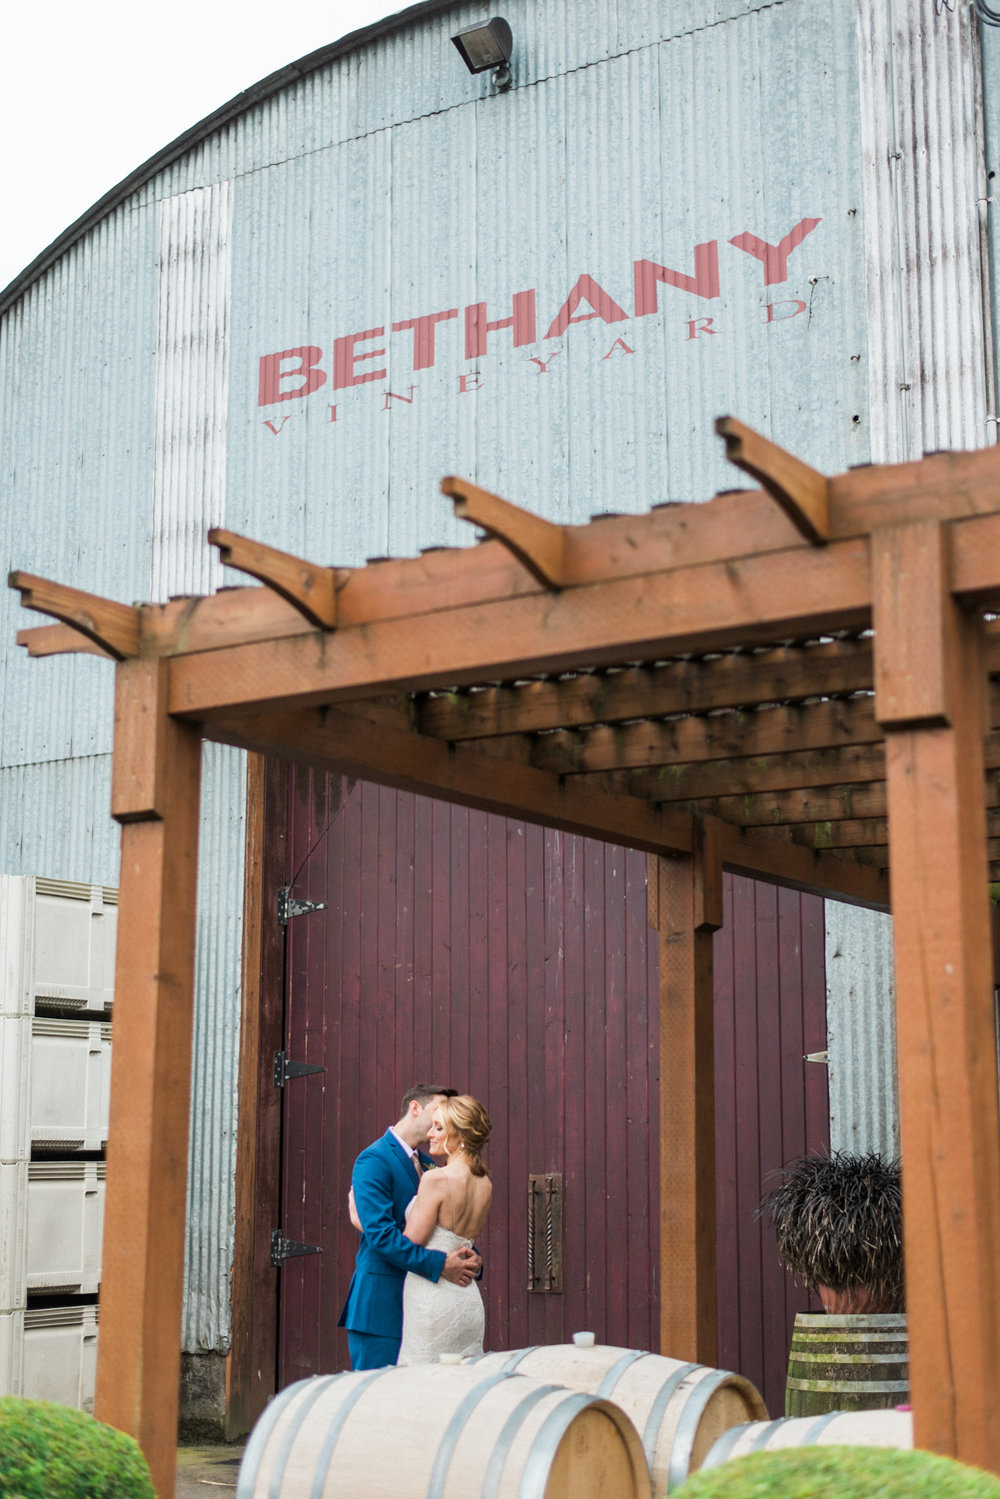 portland-wedding-photography-bethany-vineyard-shelley-marie-photo-033.jpg